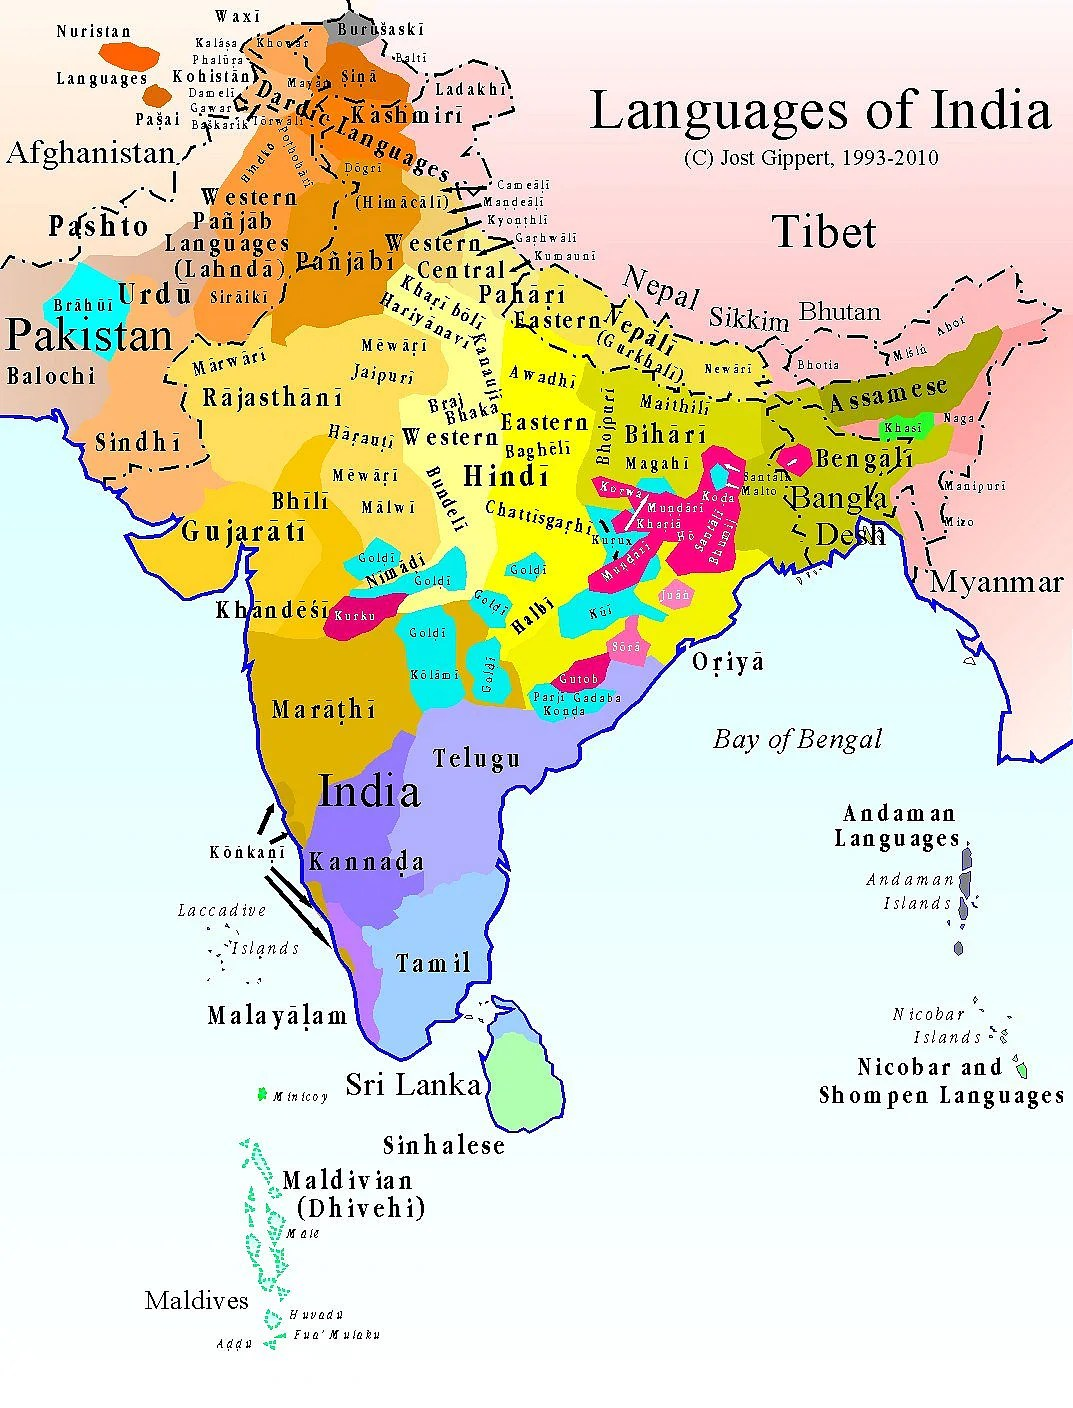 Most Dravidian languages are spoken in South India, with the exception of Brahui, which is spoken in Pakistan.